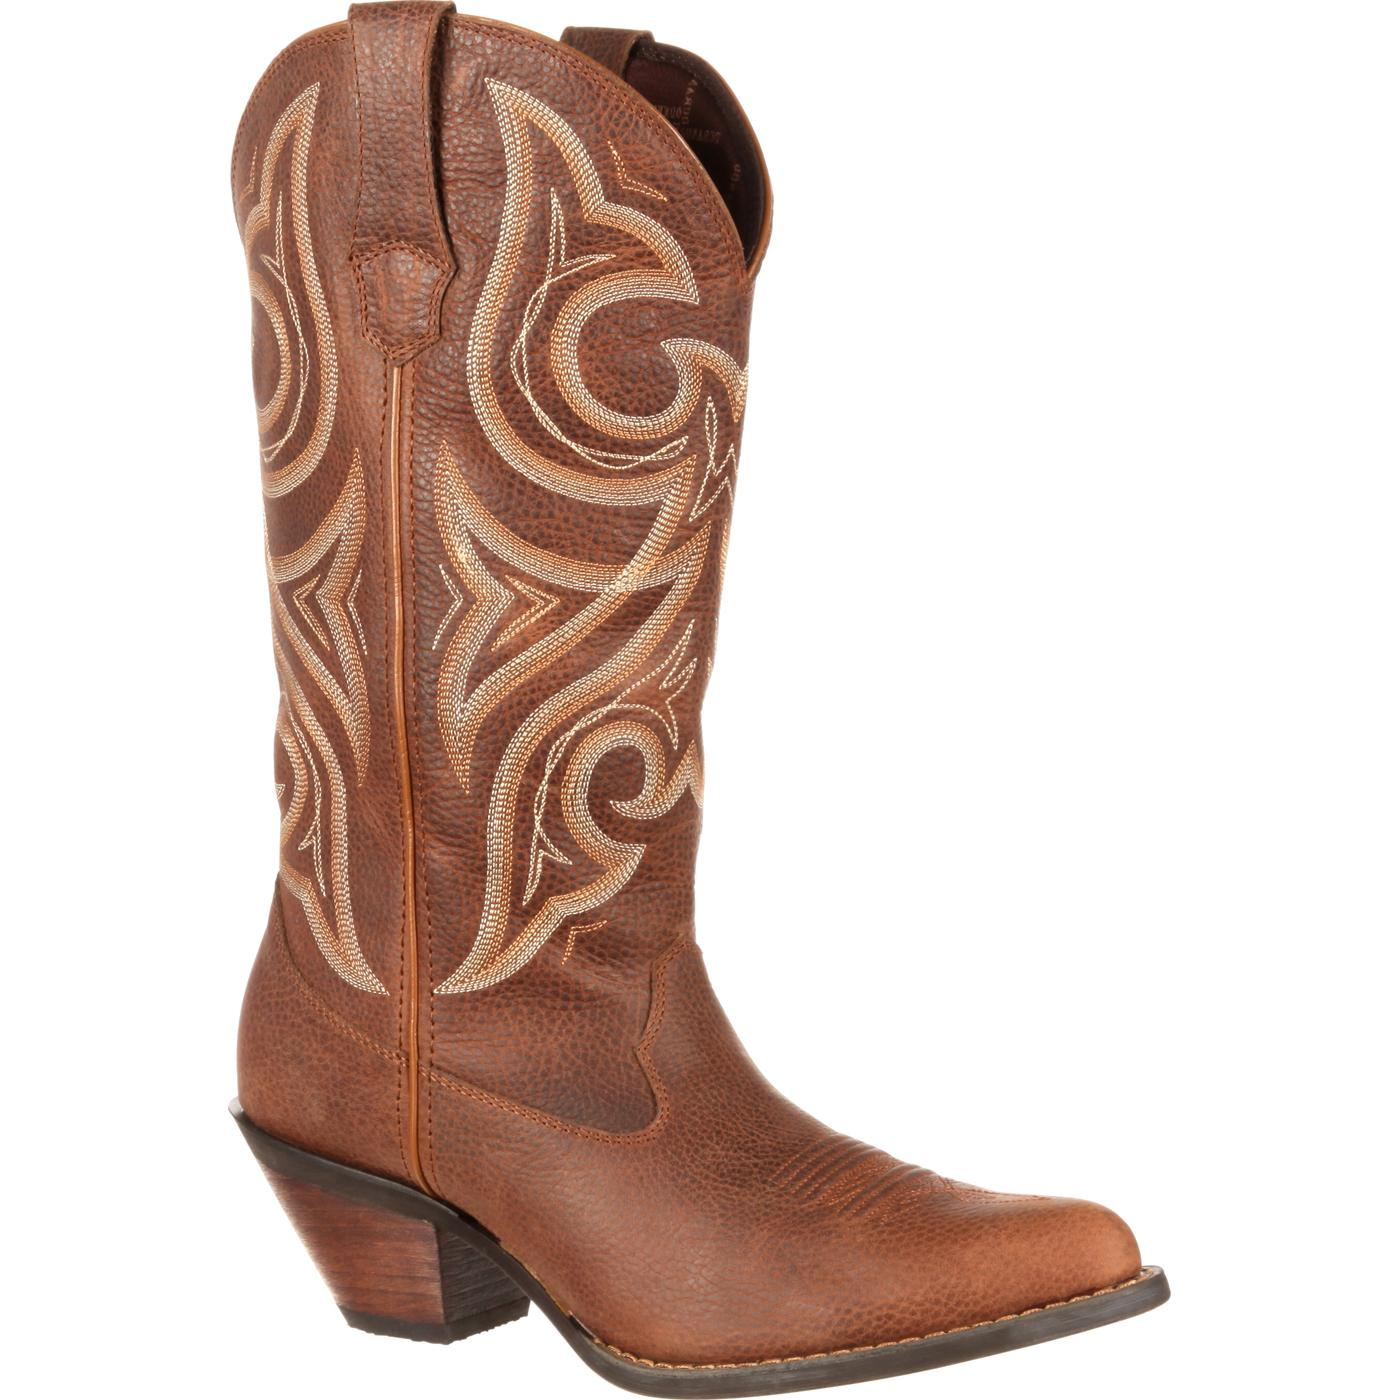 Crush by Durango Jealousy Women s Wide Calf Western Boot 64b9af68c8